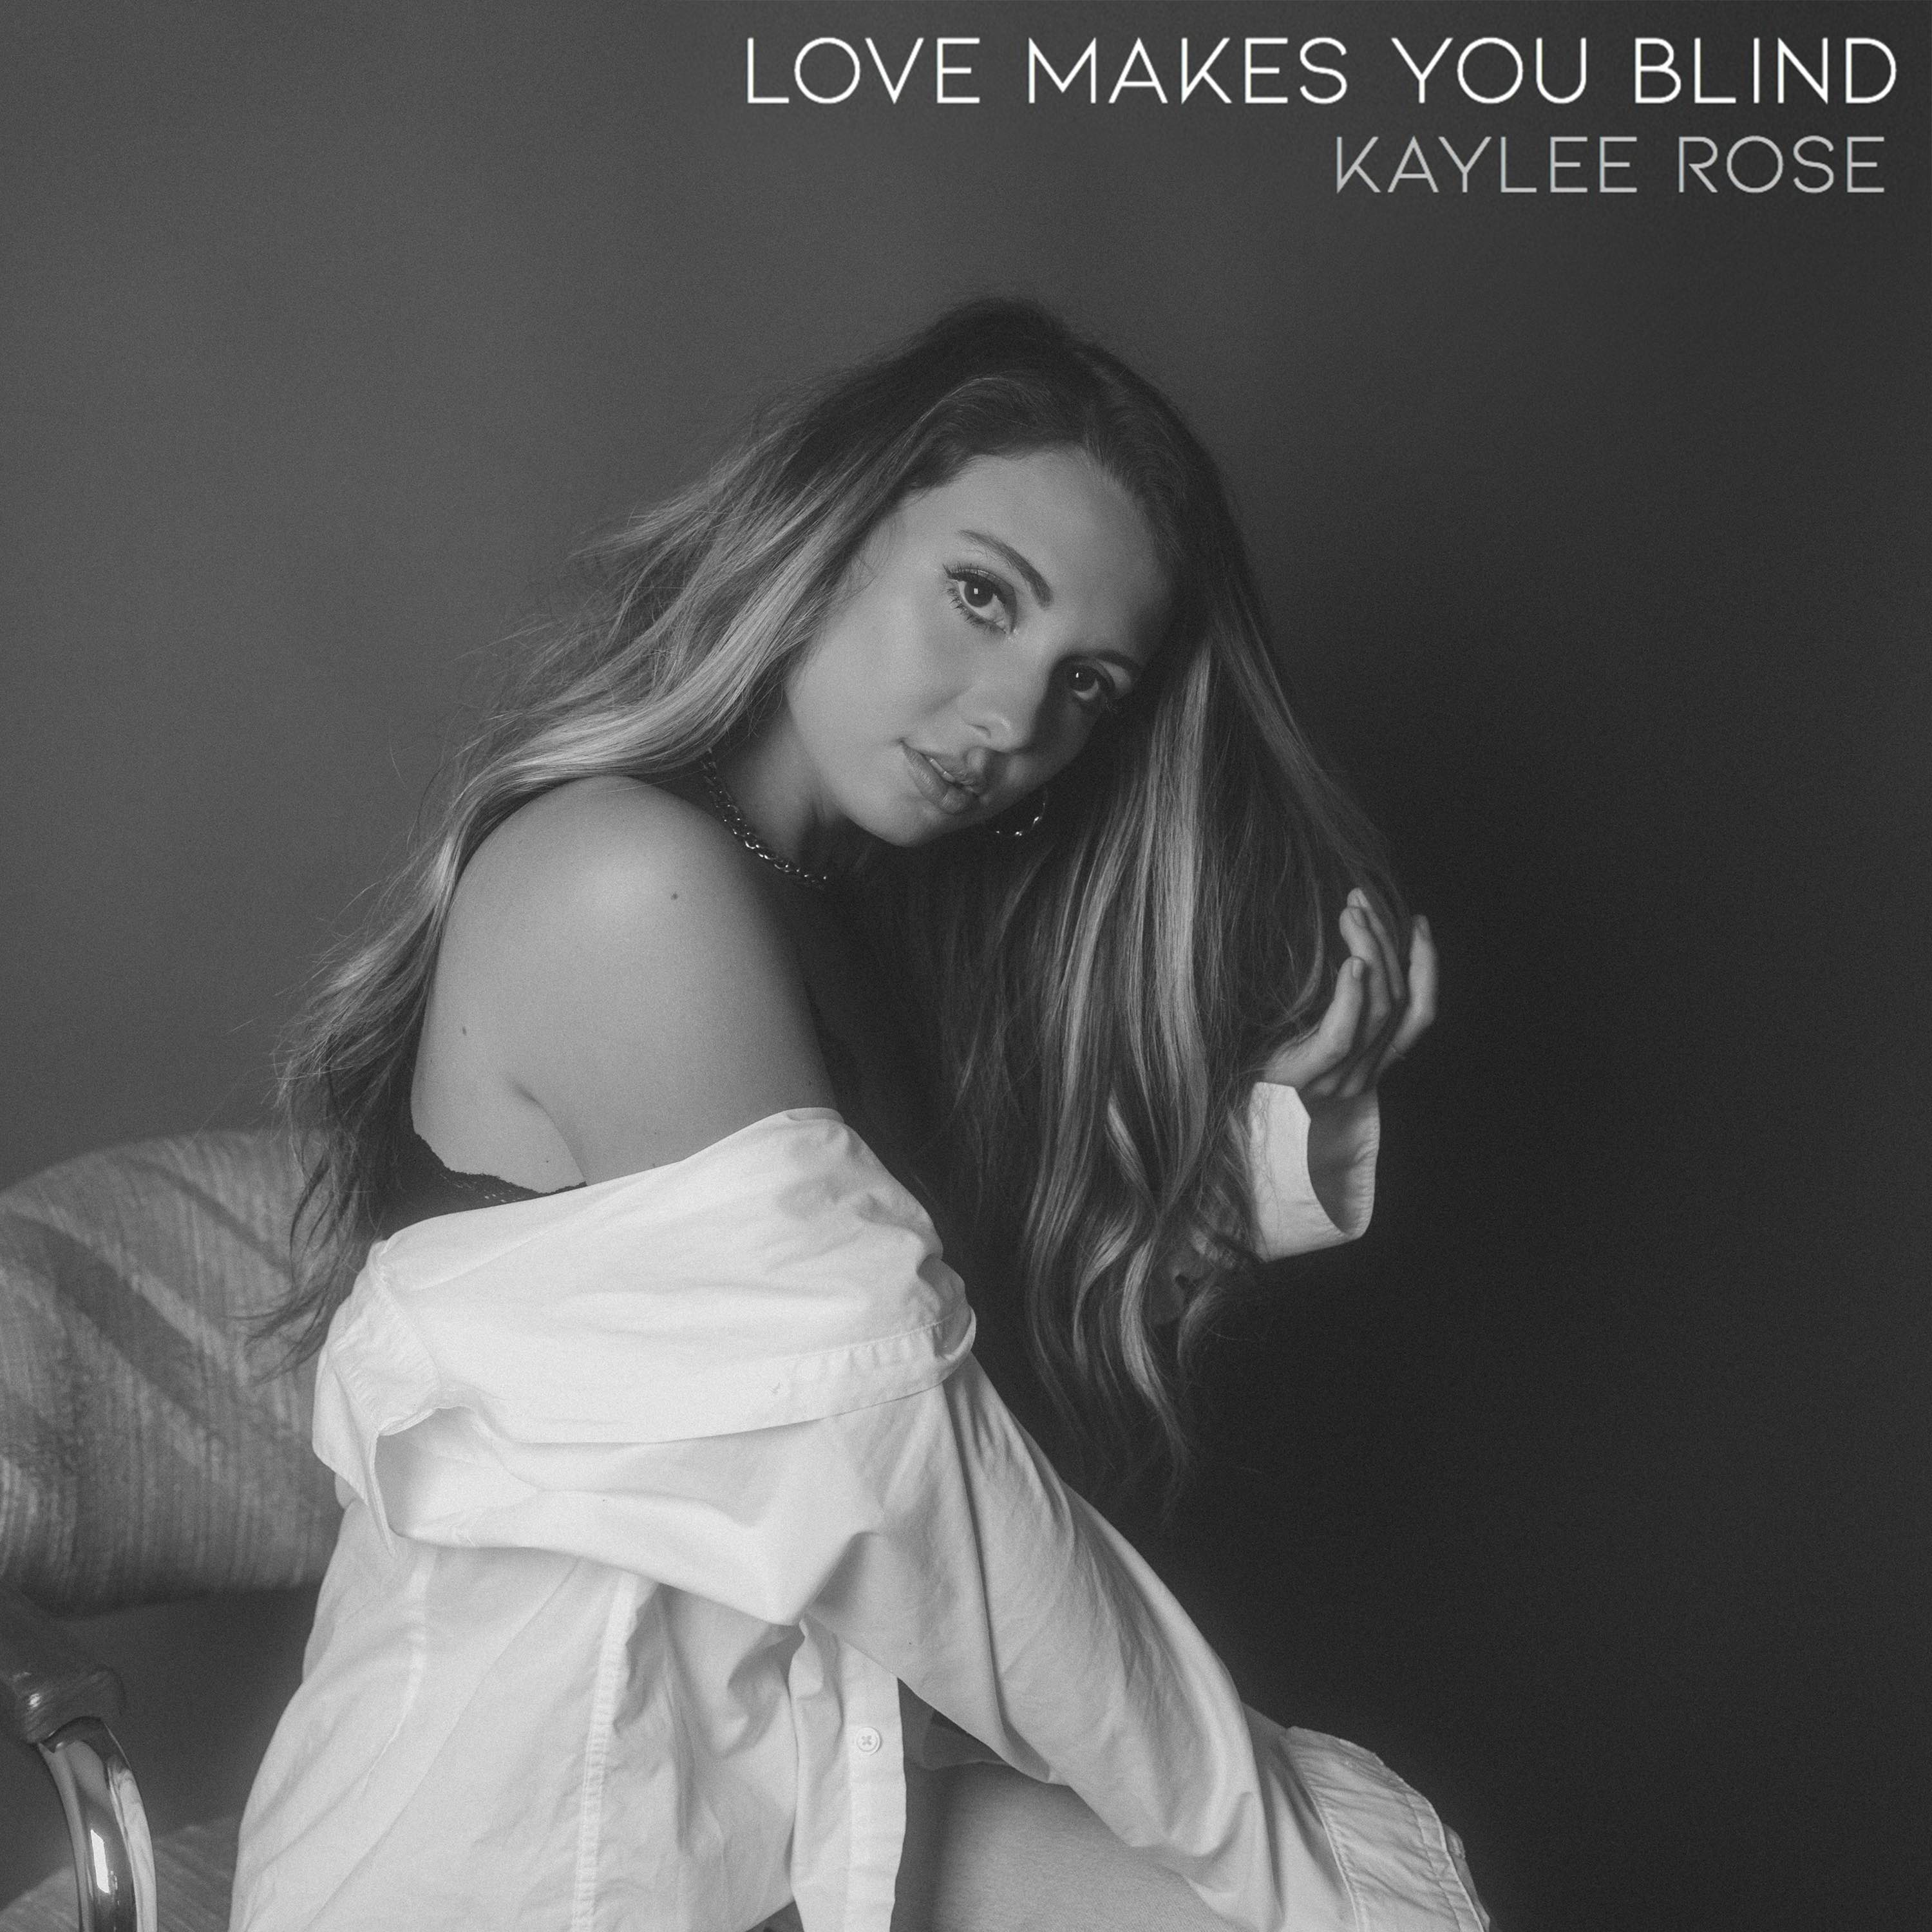 Kaylee Rose releases new single